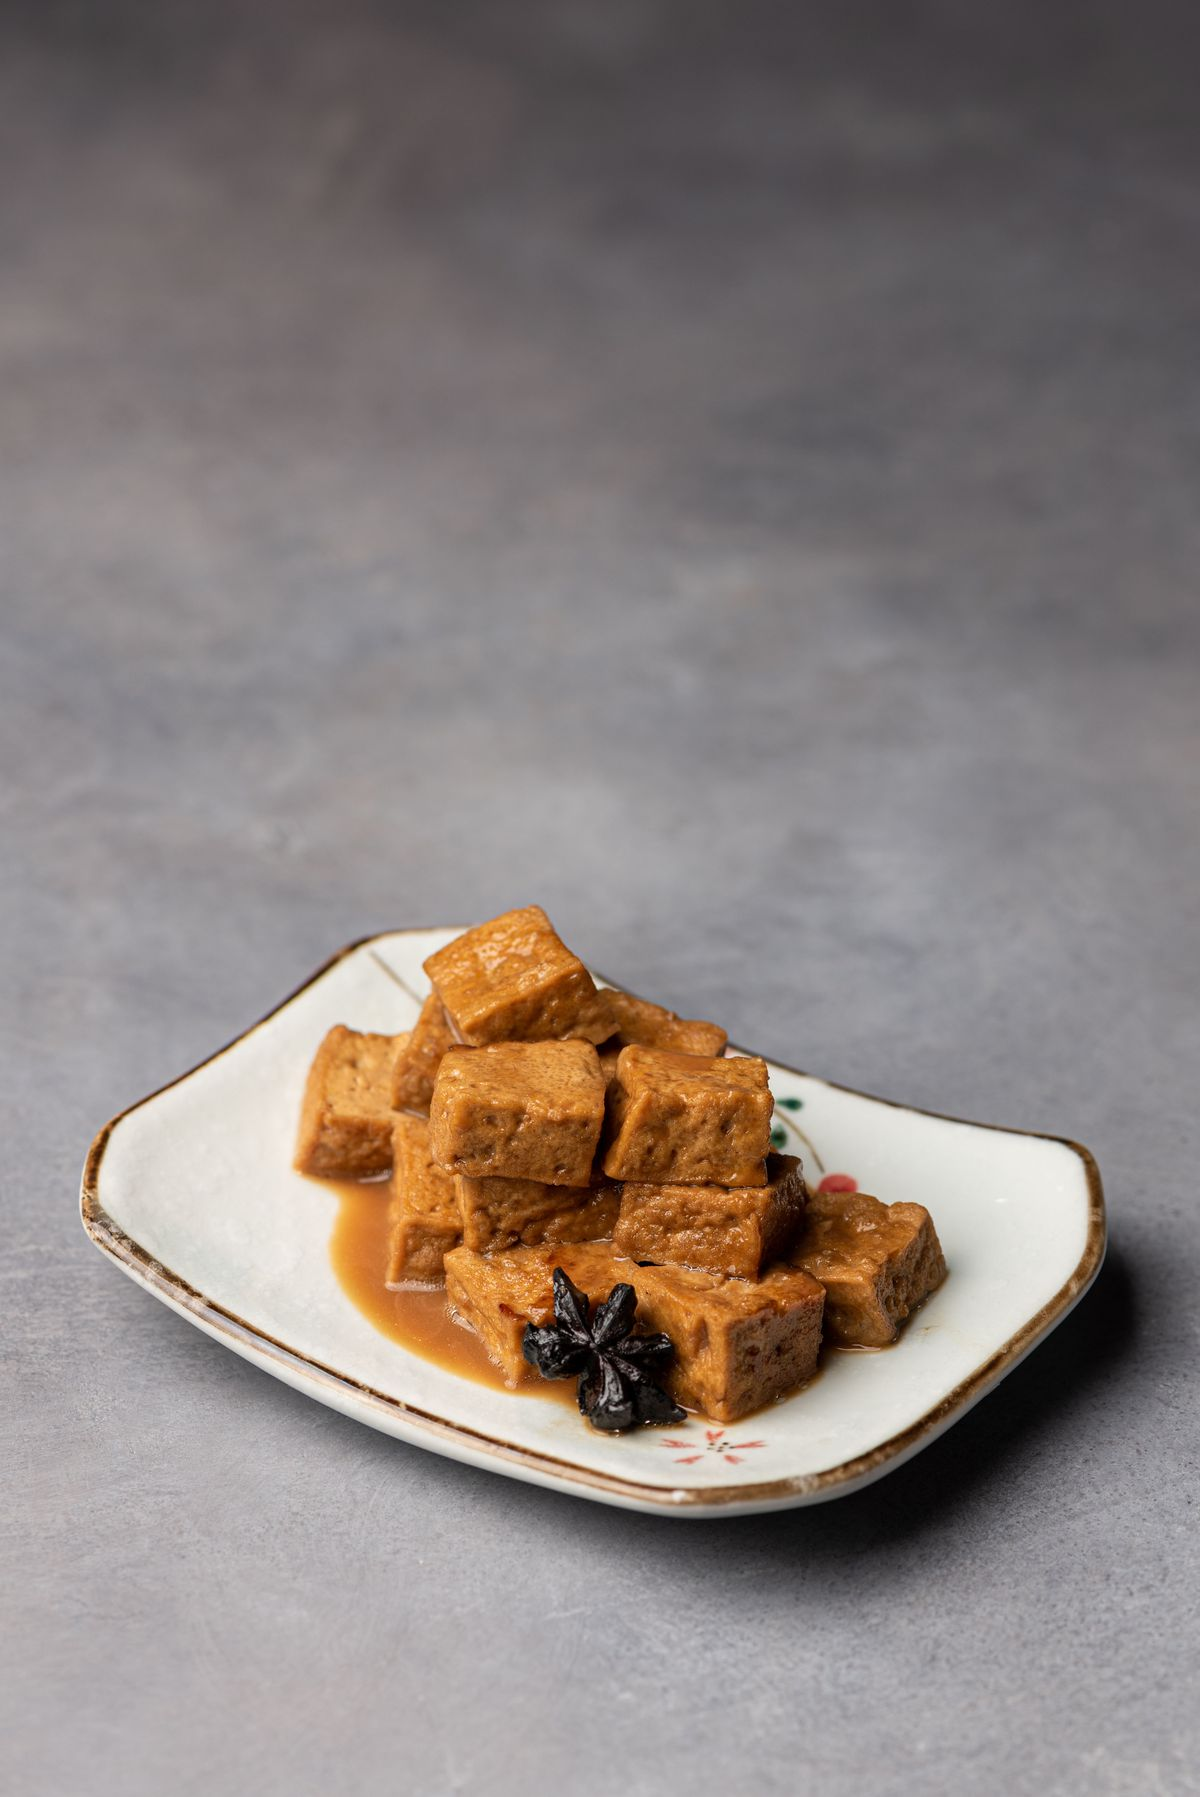 Cubes of brown braised tofu on a plate.